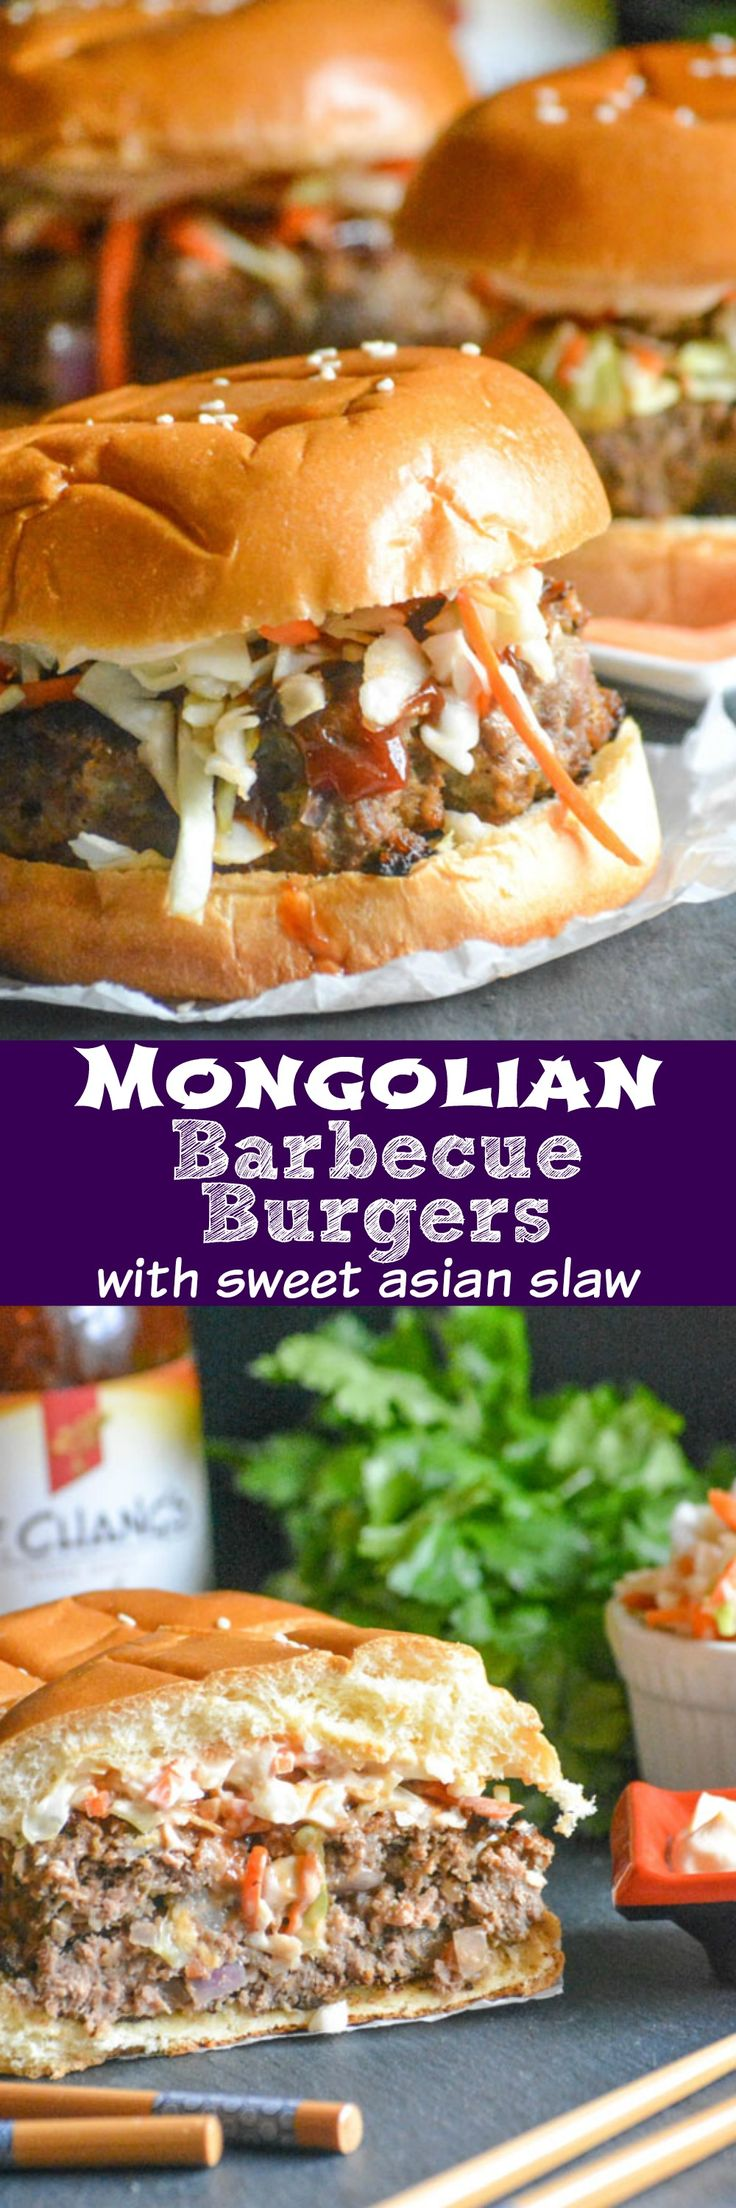 Love a good burger for a hearty lunch or dinner? Infuse yours with authentic Asian flavor with these easy Mongolian Barbecue Burgers with Asian Slaw. Thick, juicy Mongolian flavored burgers topped with an Asian style slaw are sandwiched between buttery brioche buns, and ready for you to tuck right into. #AuthenticMadeEasy @walmart #ad